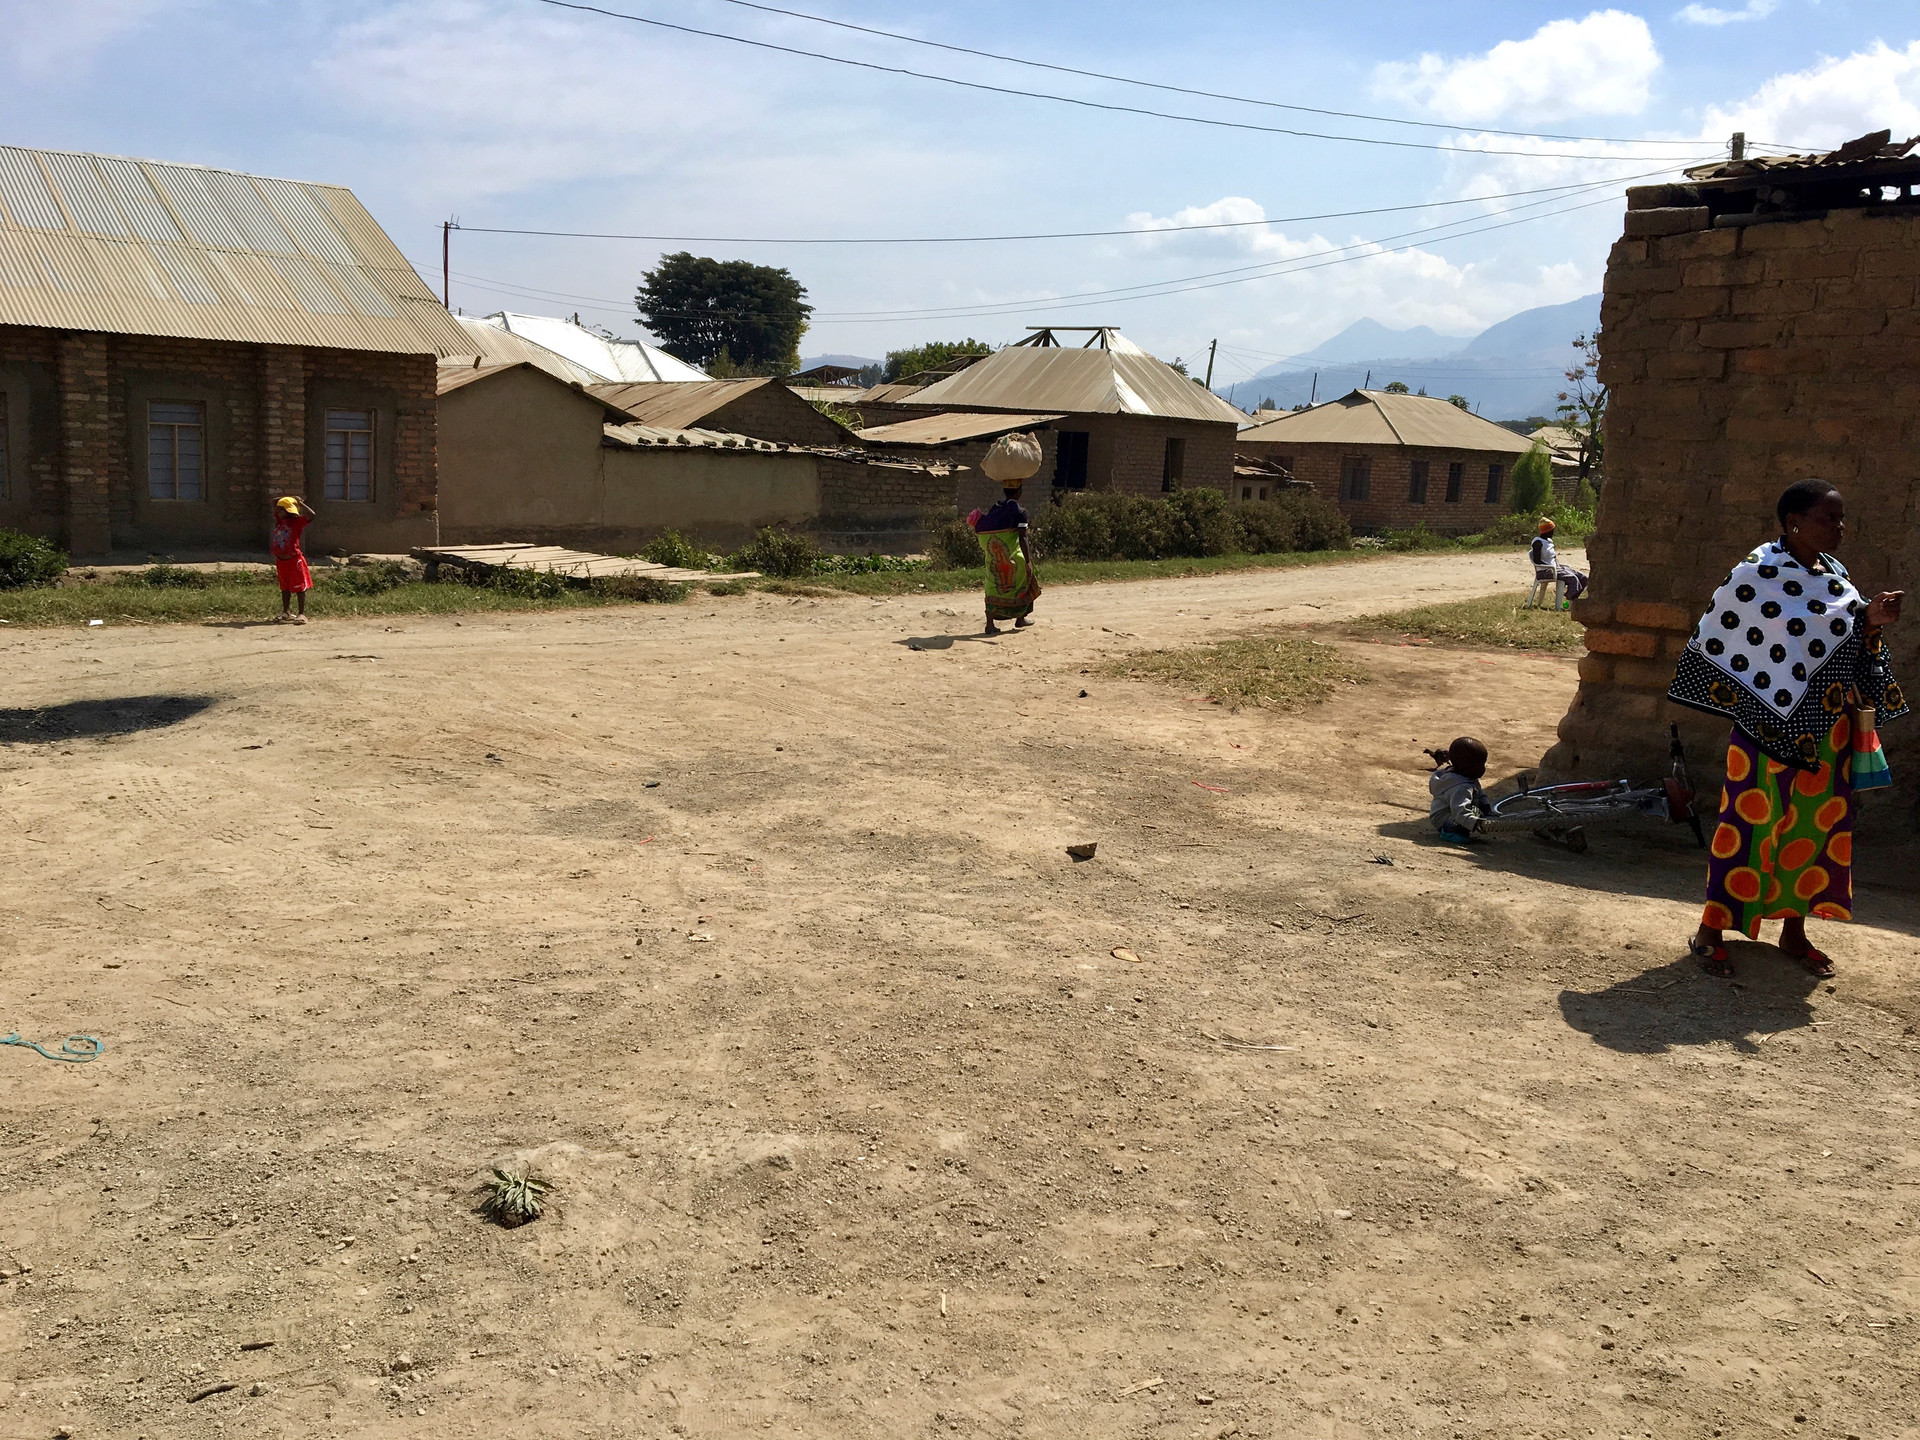 Street shot as we wait for our transport to the airport to fly from Mbeya to Dar es Salaam